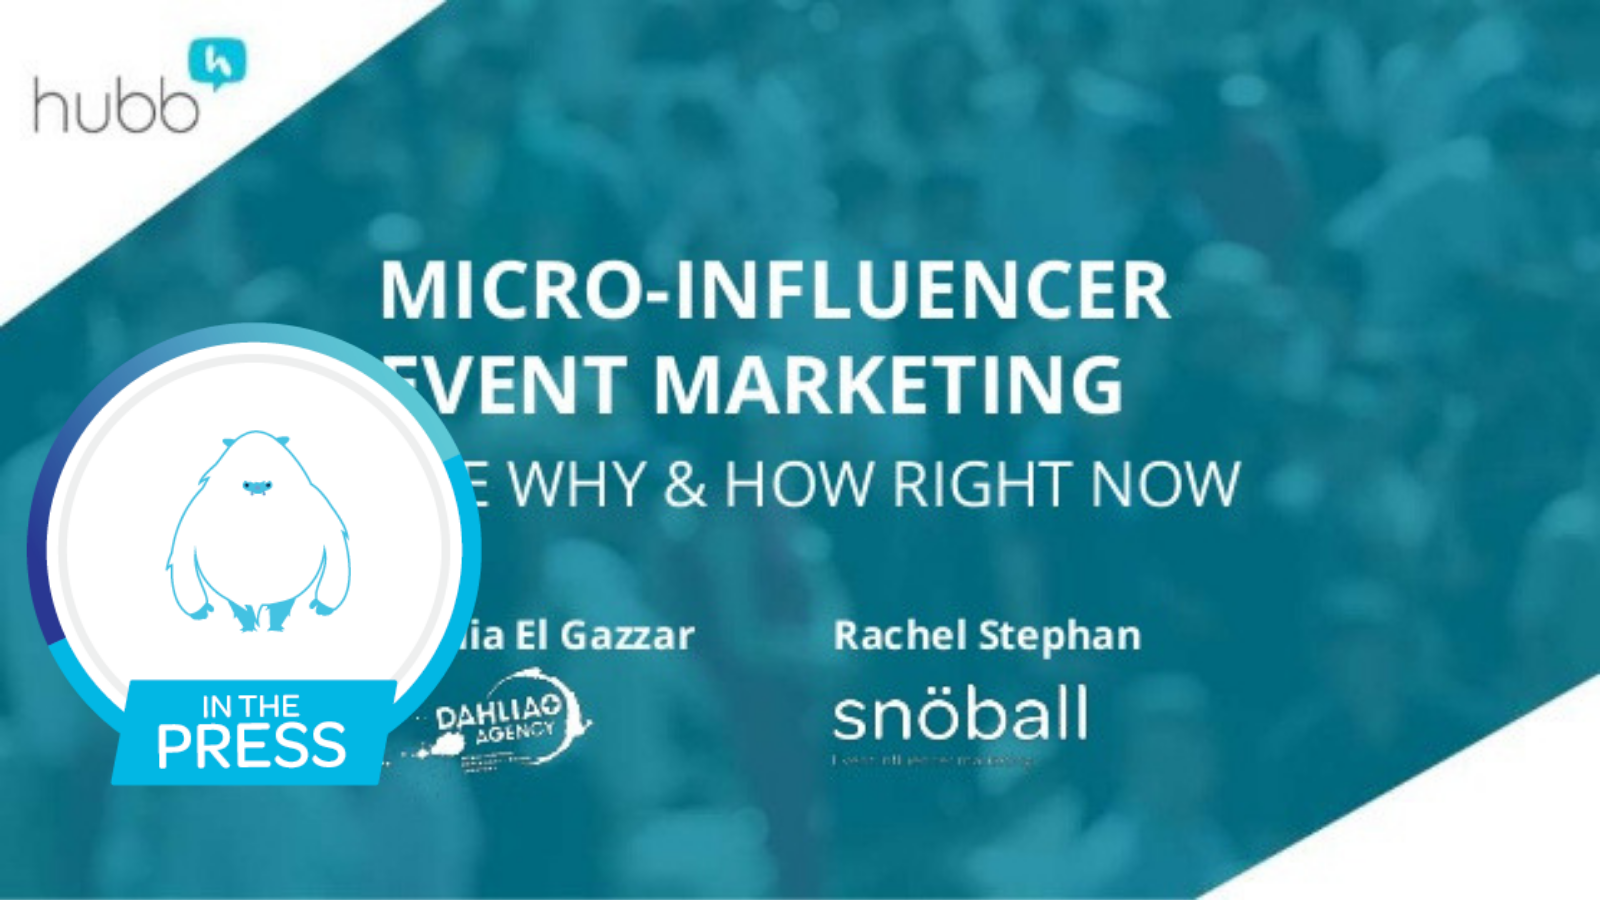 [Webinar] Micro-Influencer Event Marketing: The Why & How Right Now by Hubb